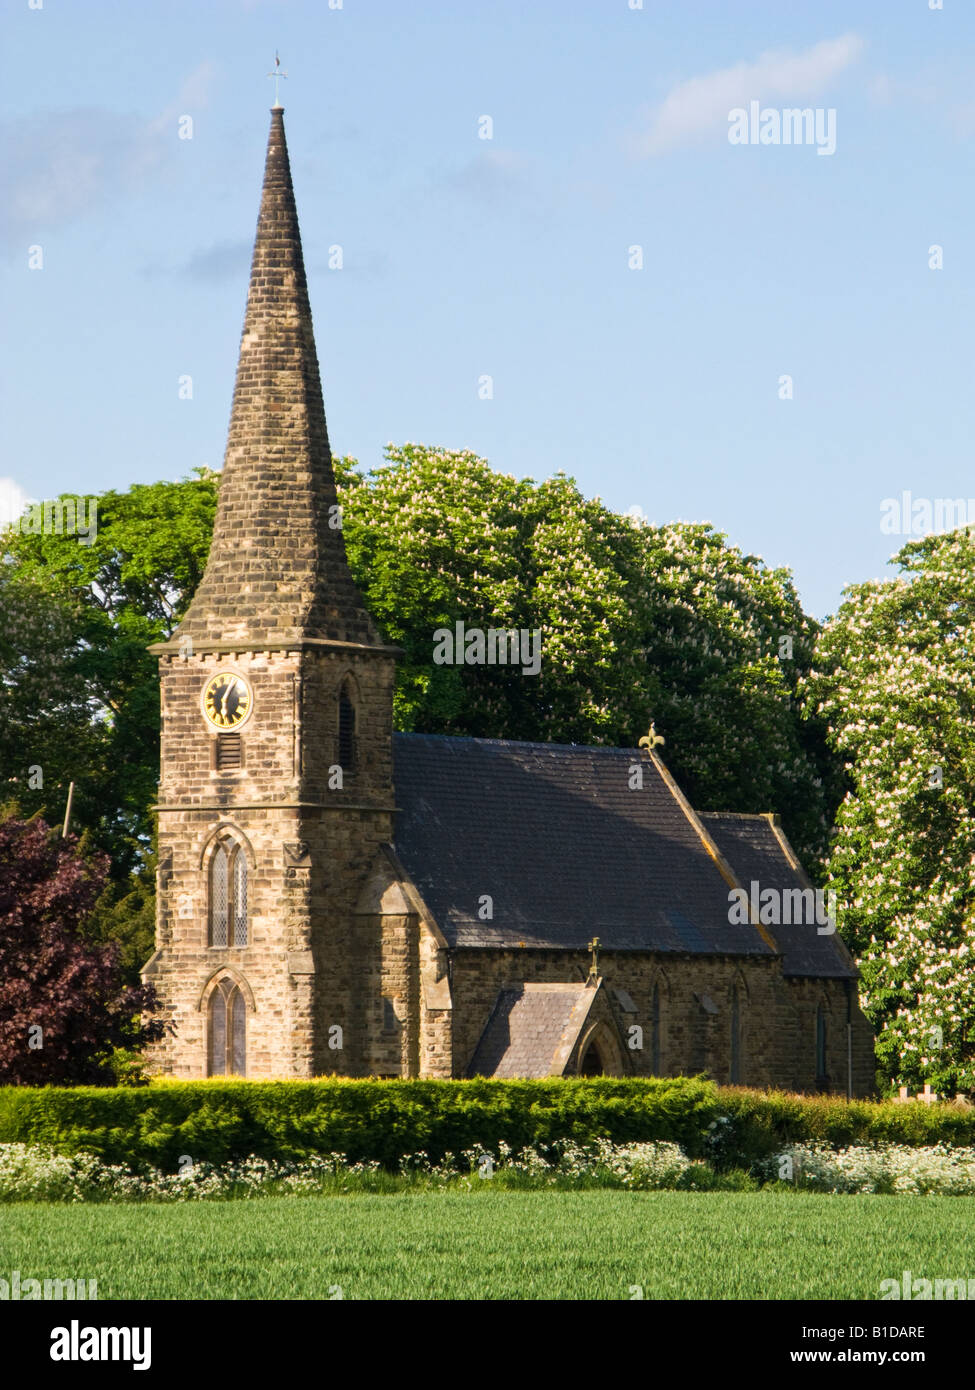 Country church of St Marks in Amcotts, North Lincolnshire, England, UK - Stock Image